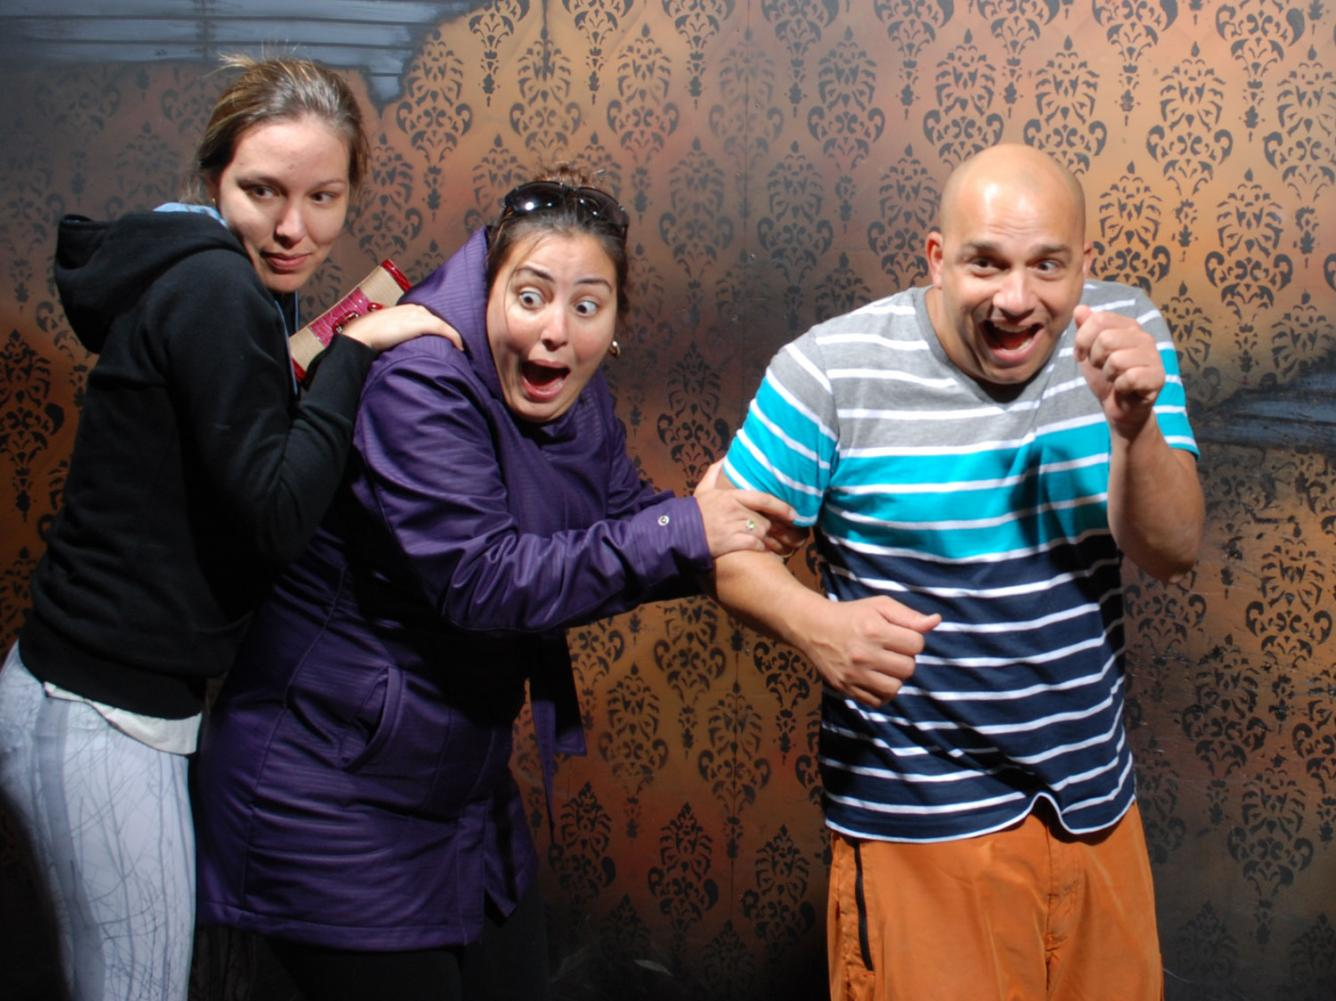 Nightmares Fear Factory Top 40 September 2013 pic0352